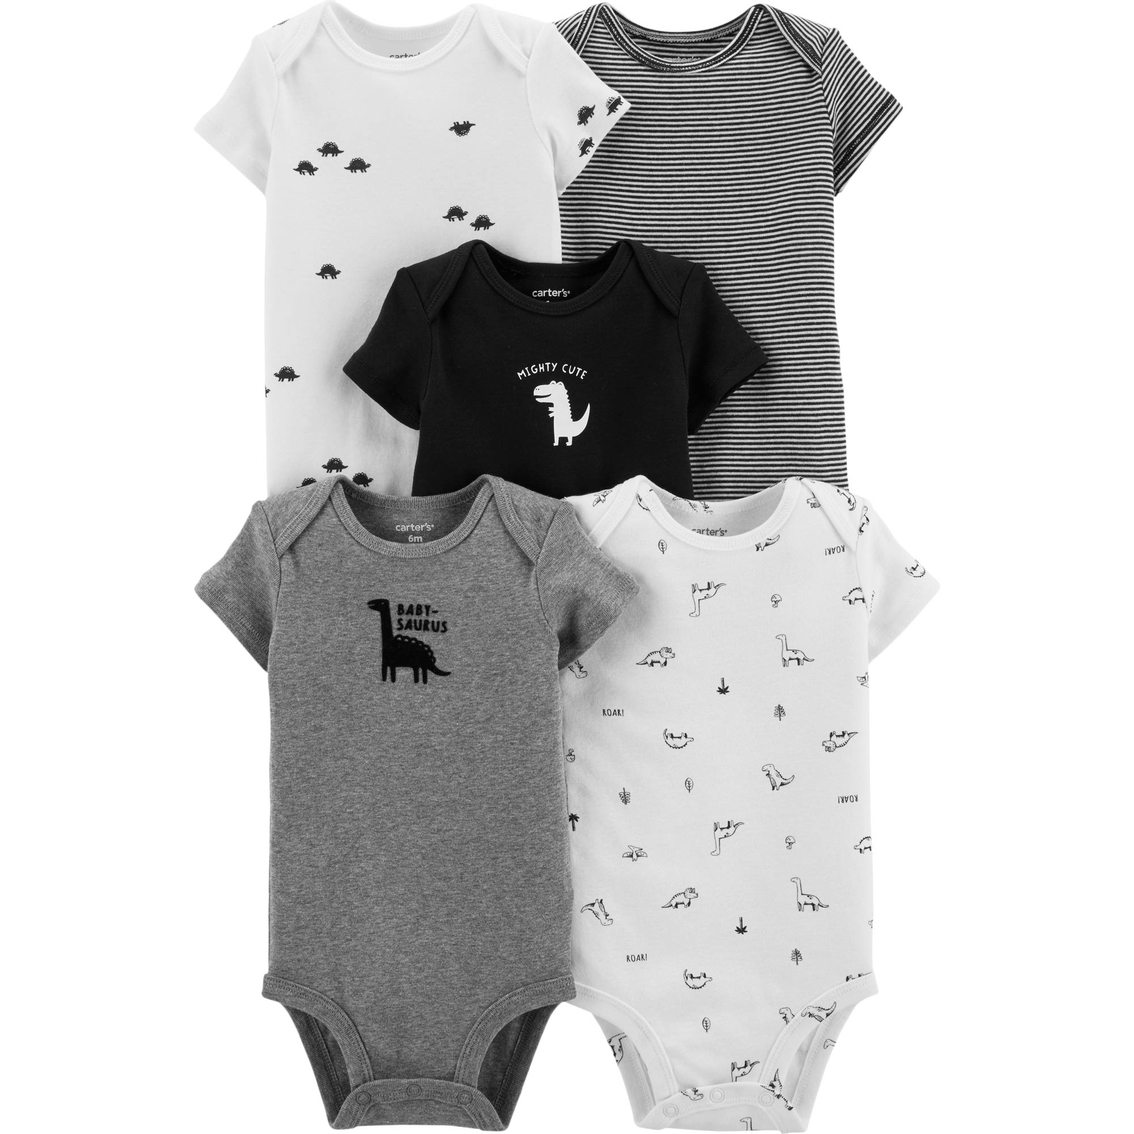 New Carter/'s 5-Pack Sport Bodysuits Short Sleeve Boy 9,24Months